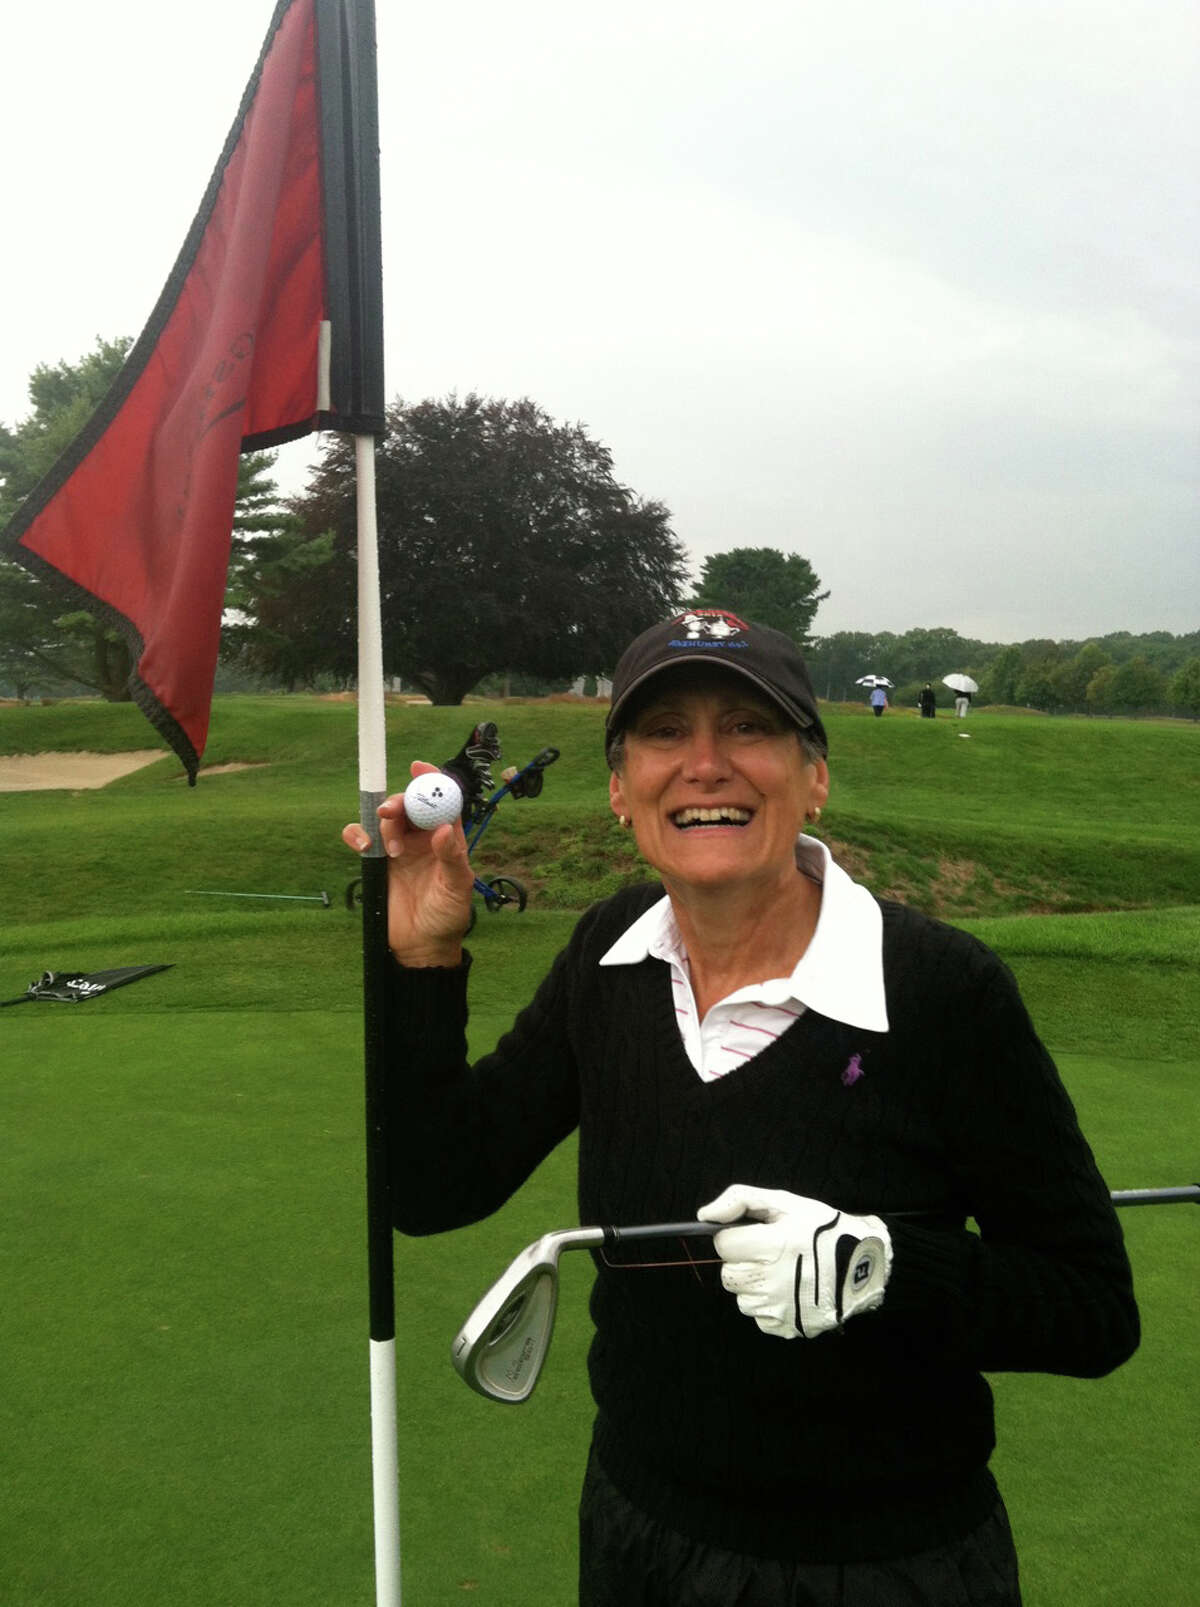 Alison Tane celebrates a hole-in-one on the eighth hole at Longshore during the Longshire Women's Golf Association event on Tuesday. Tane hit a 7-iron on the 123-yard hole.